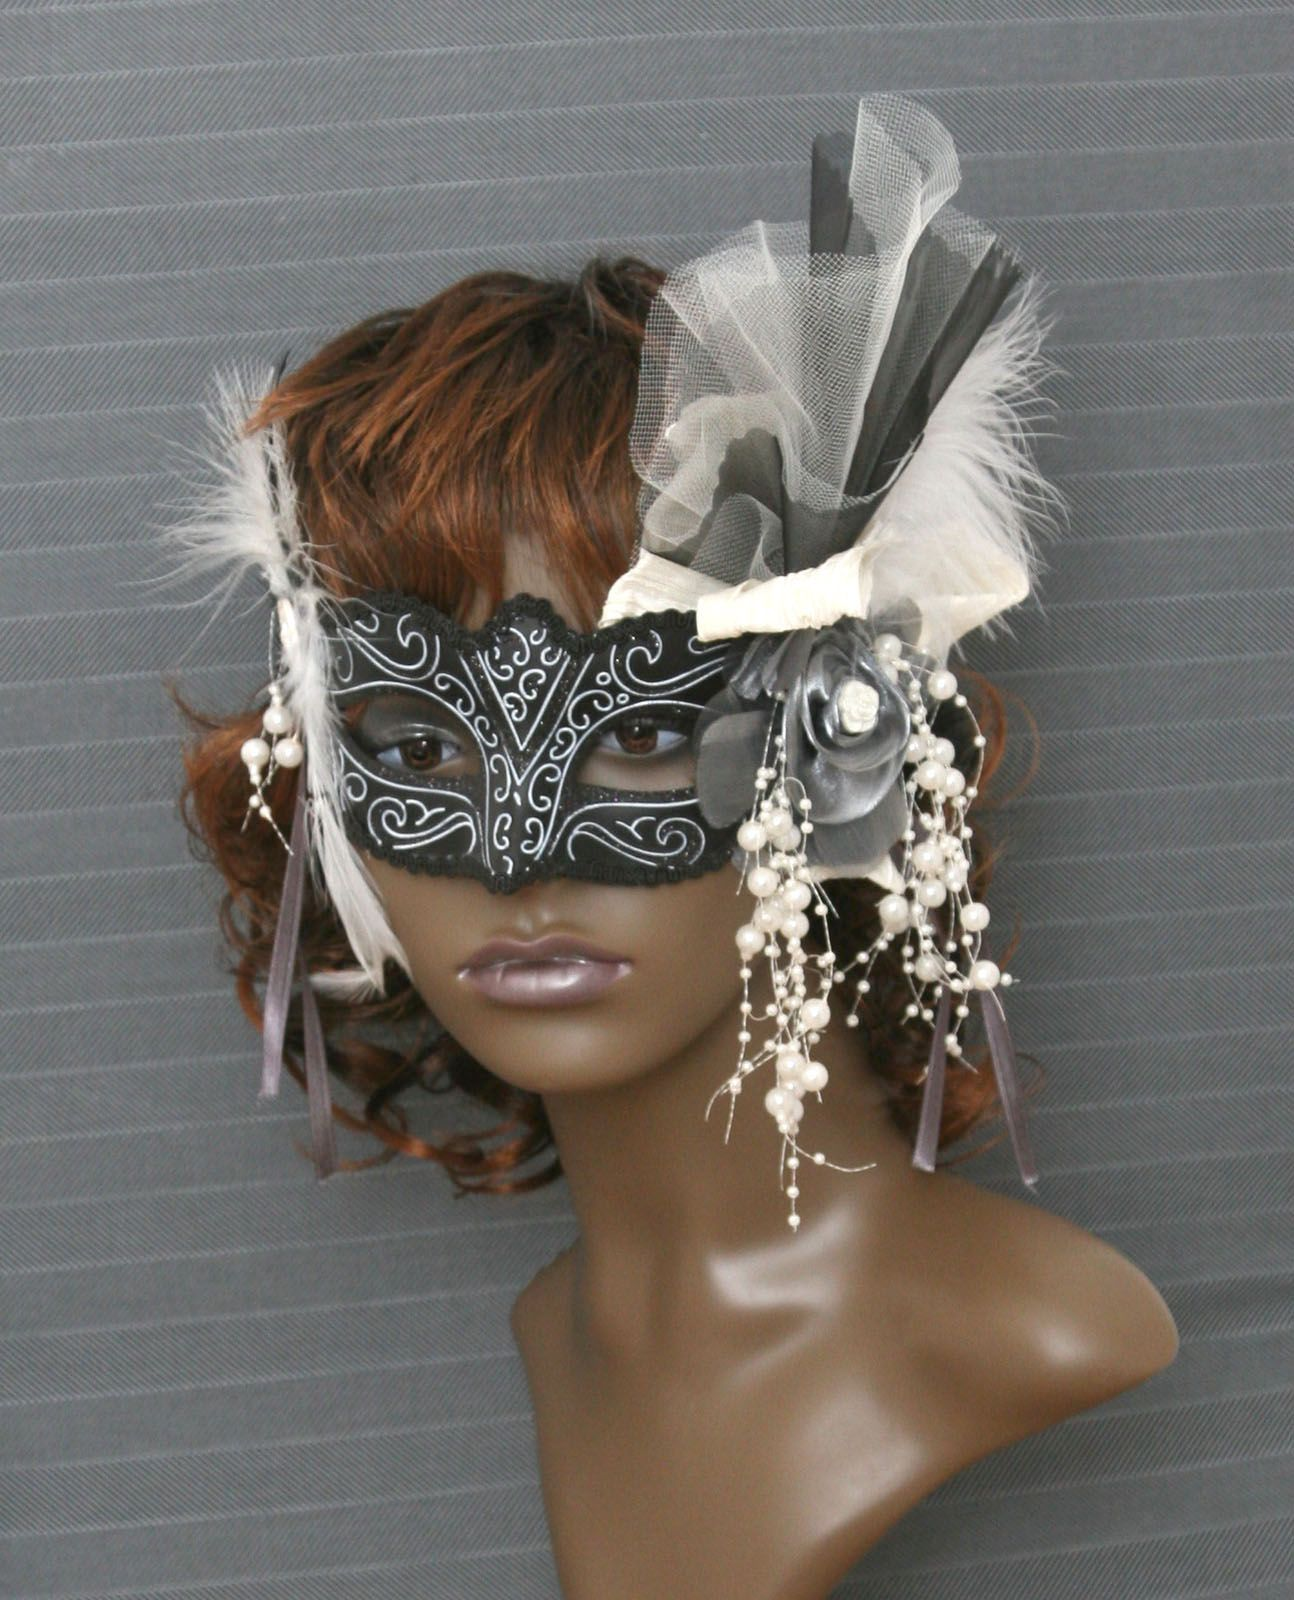 Bespoke masquerade mask by www.maisondecantern.co.uk